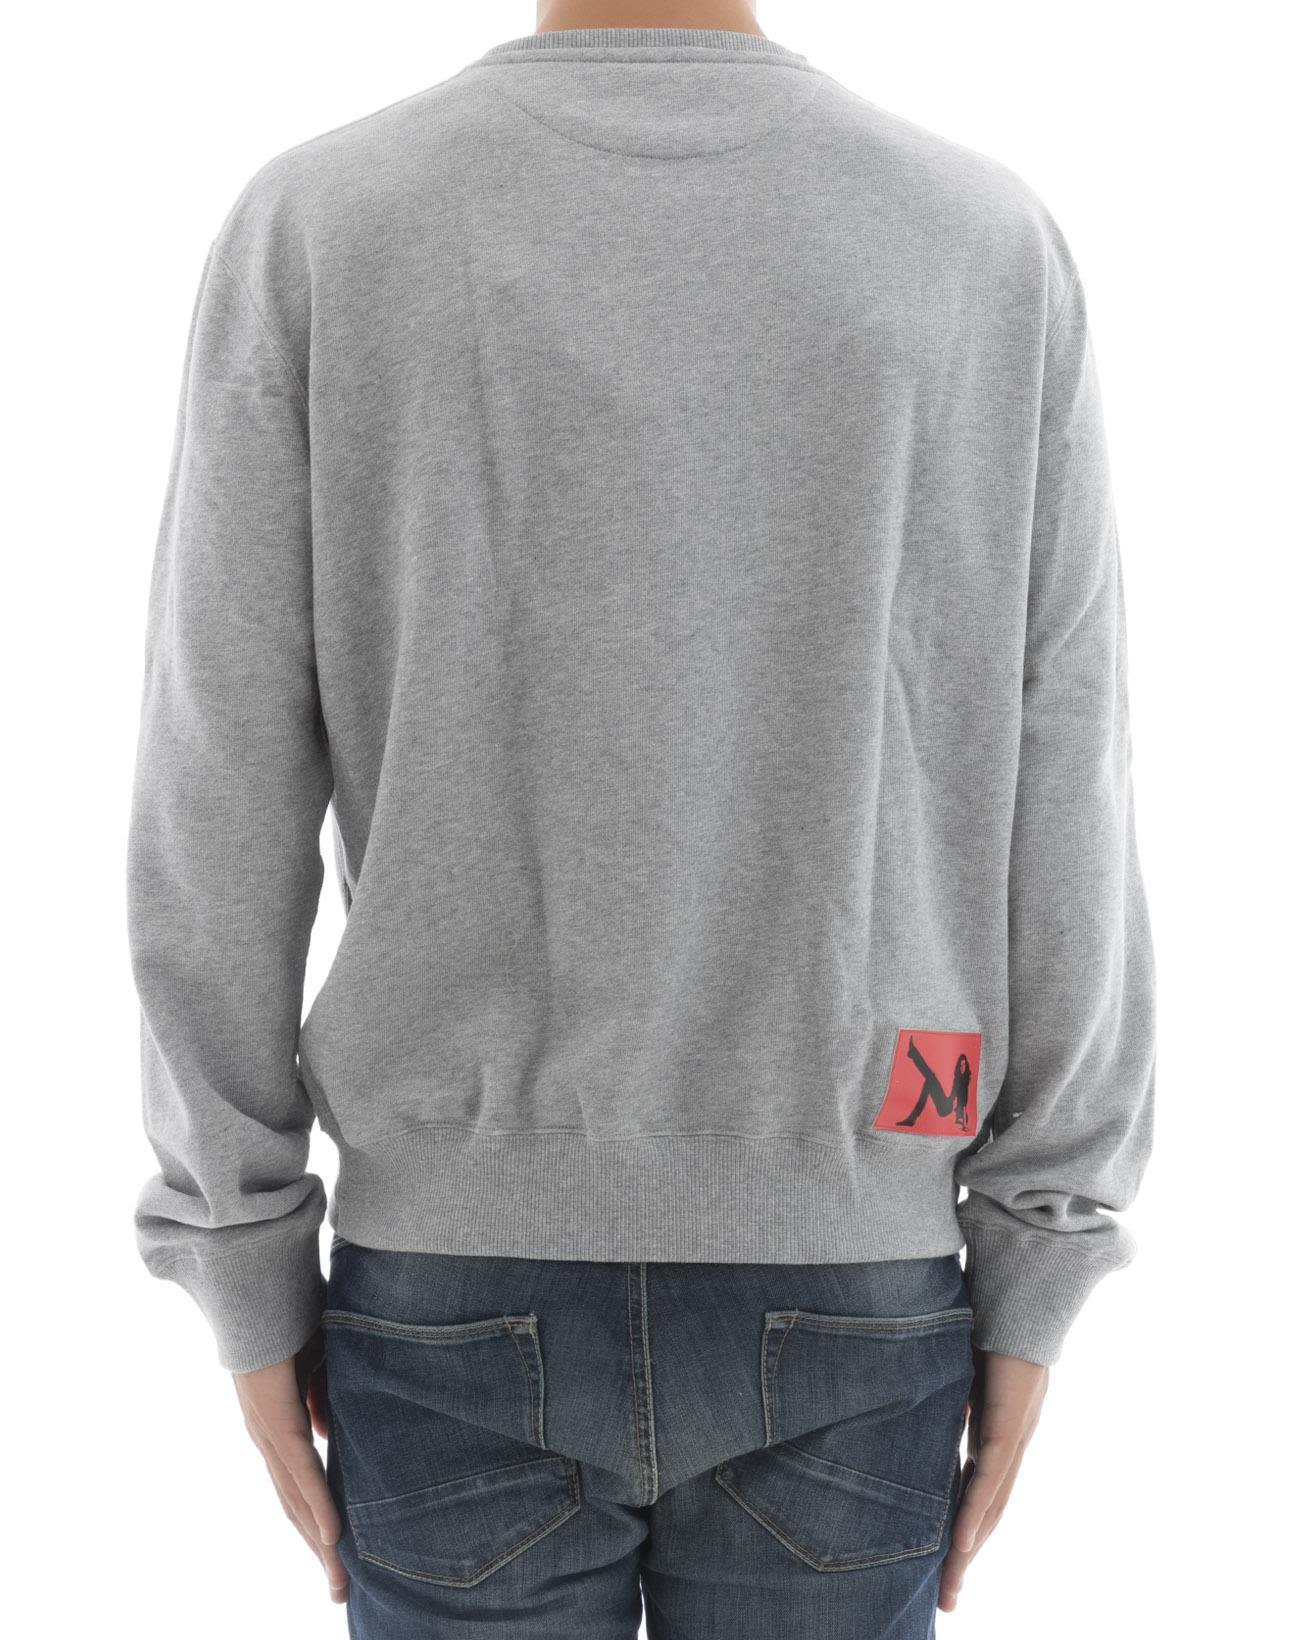 Calvin Klein - Grey Cotton Sweater - Grey, Men's Sweaters | Italist